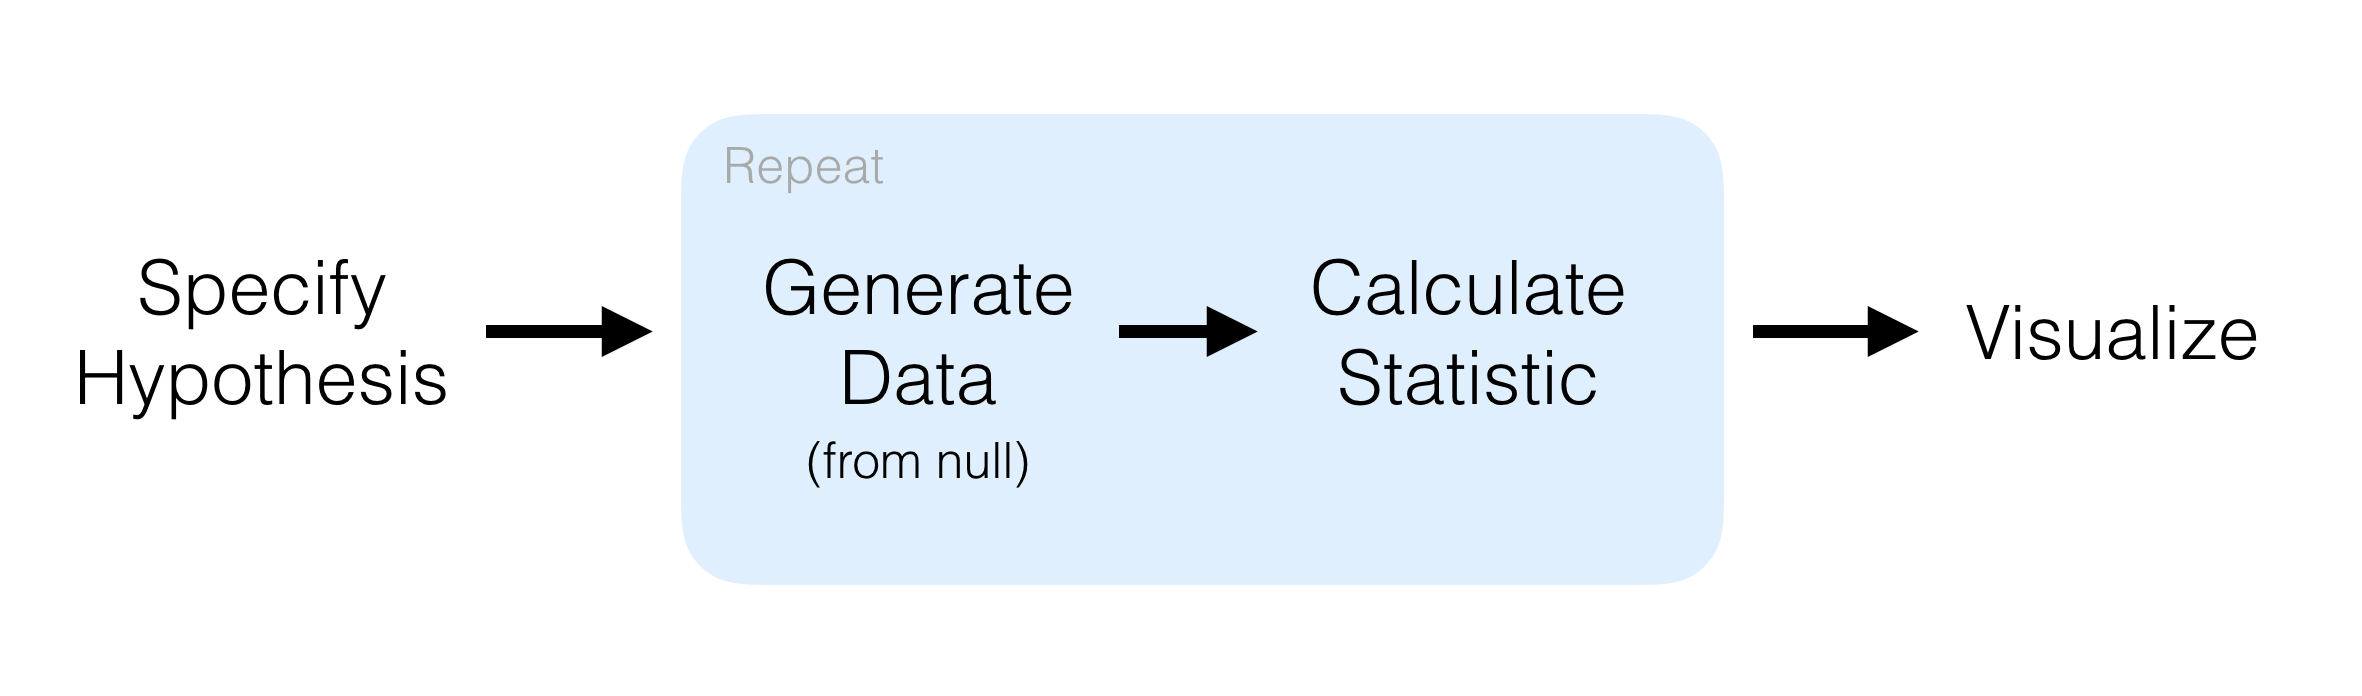 A diagram showing four steps to carry out randomization-based inference: specify hypothesis, generate data, calculate statistic, and visualize. From left to right, each step is connected by an arrow, while the diagram indicates that generating data and calculating statistics can happen iteratively.